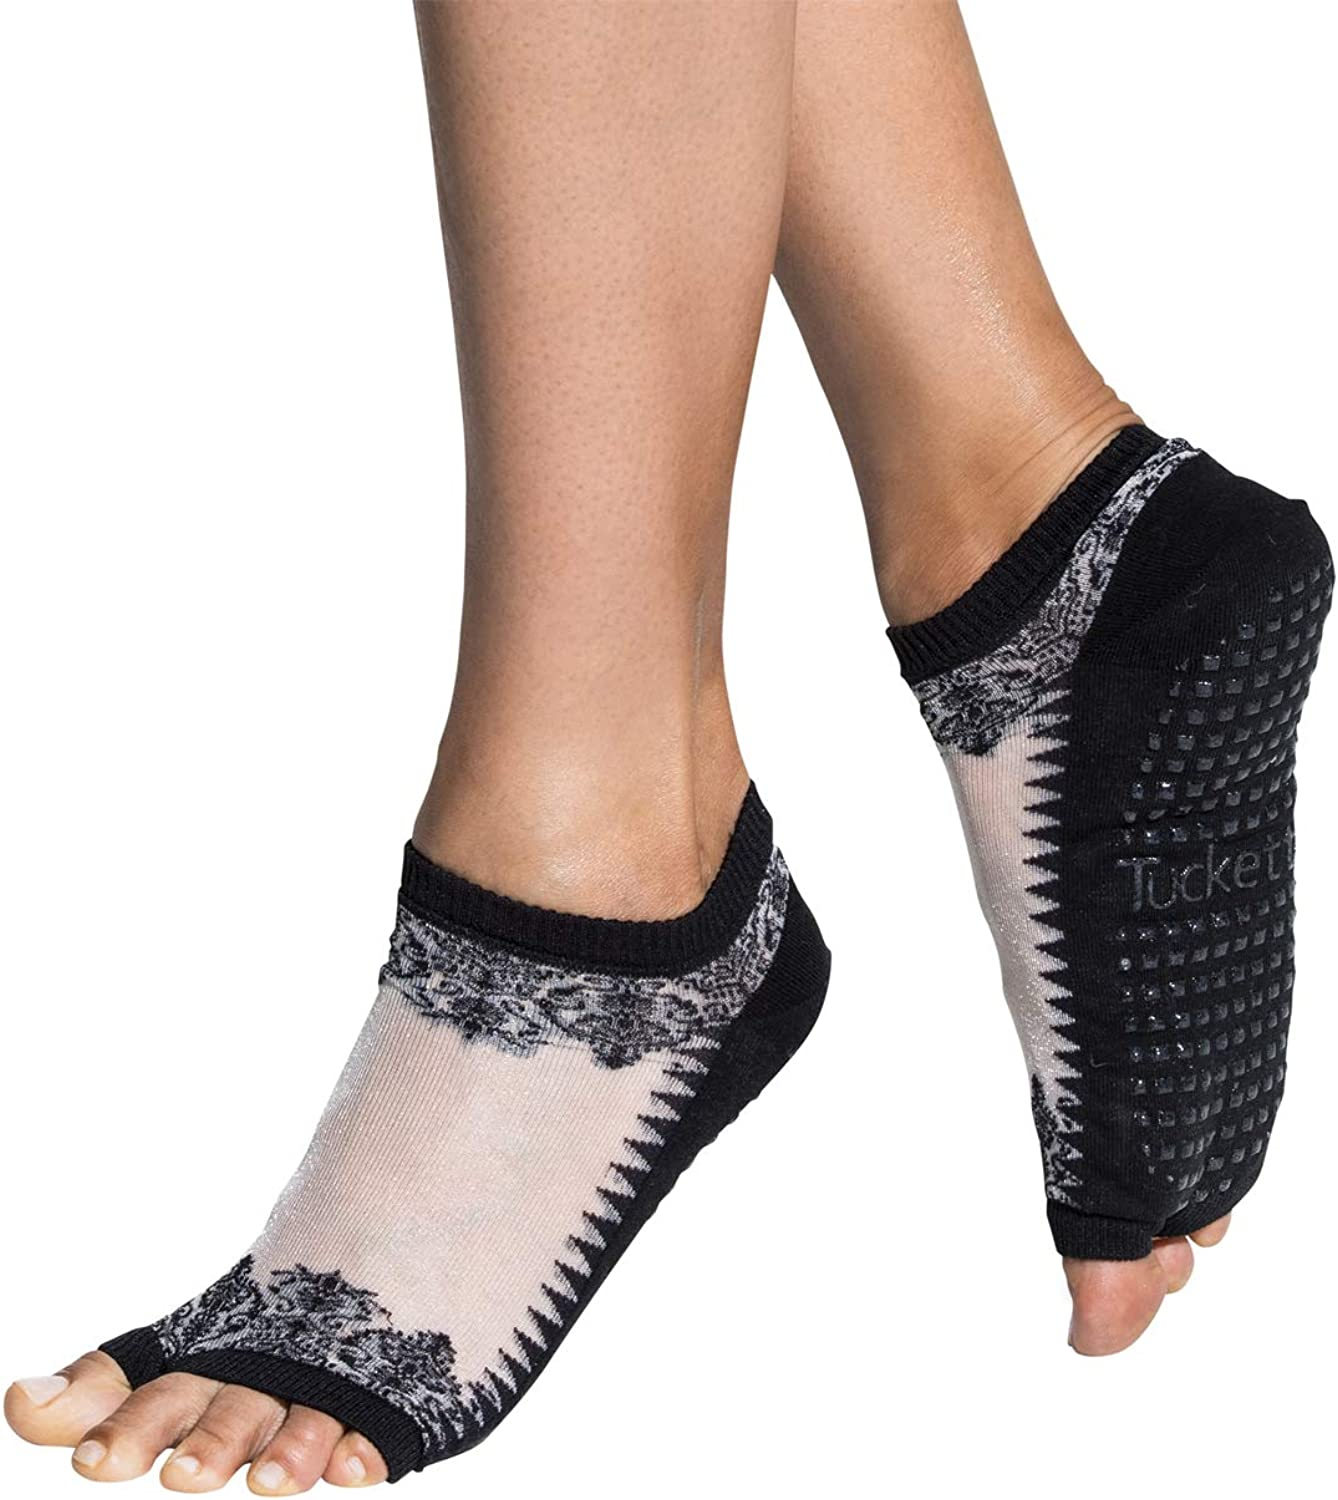 Details about  /Women Pilates Ballet Backless Yoga Socks With Bandage Five Fingers Breathable